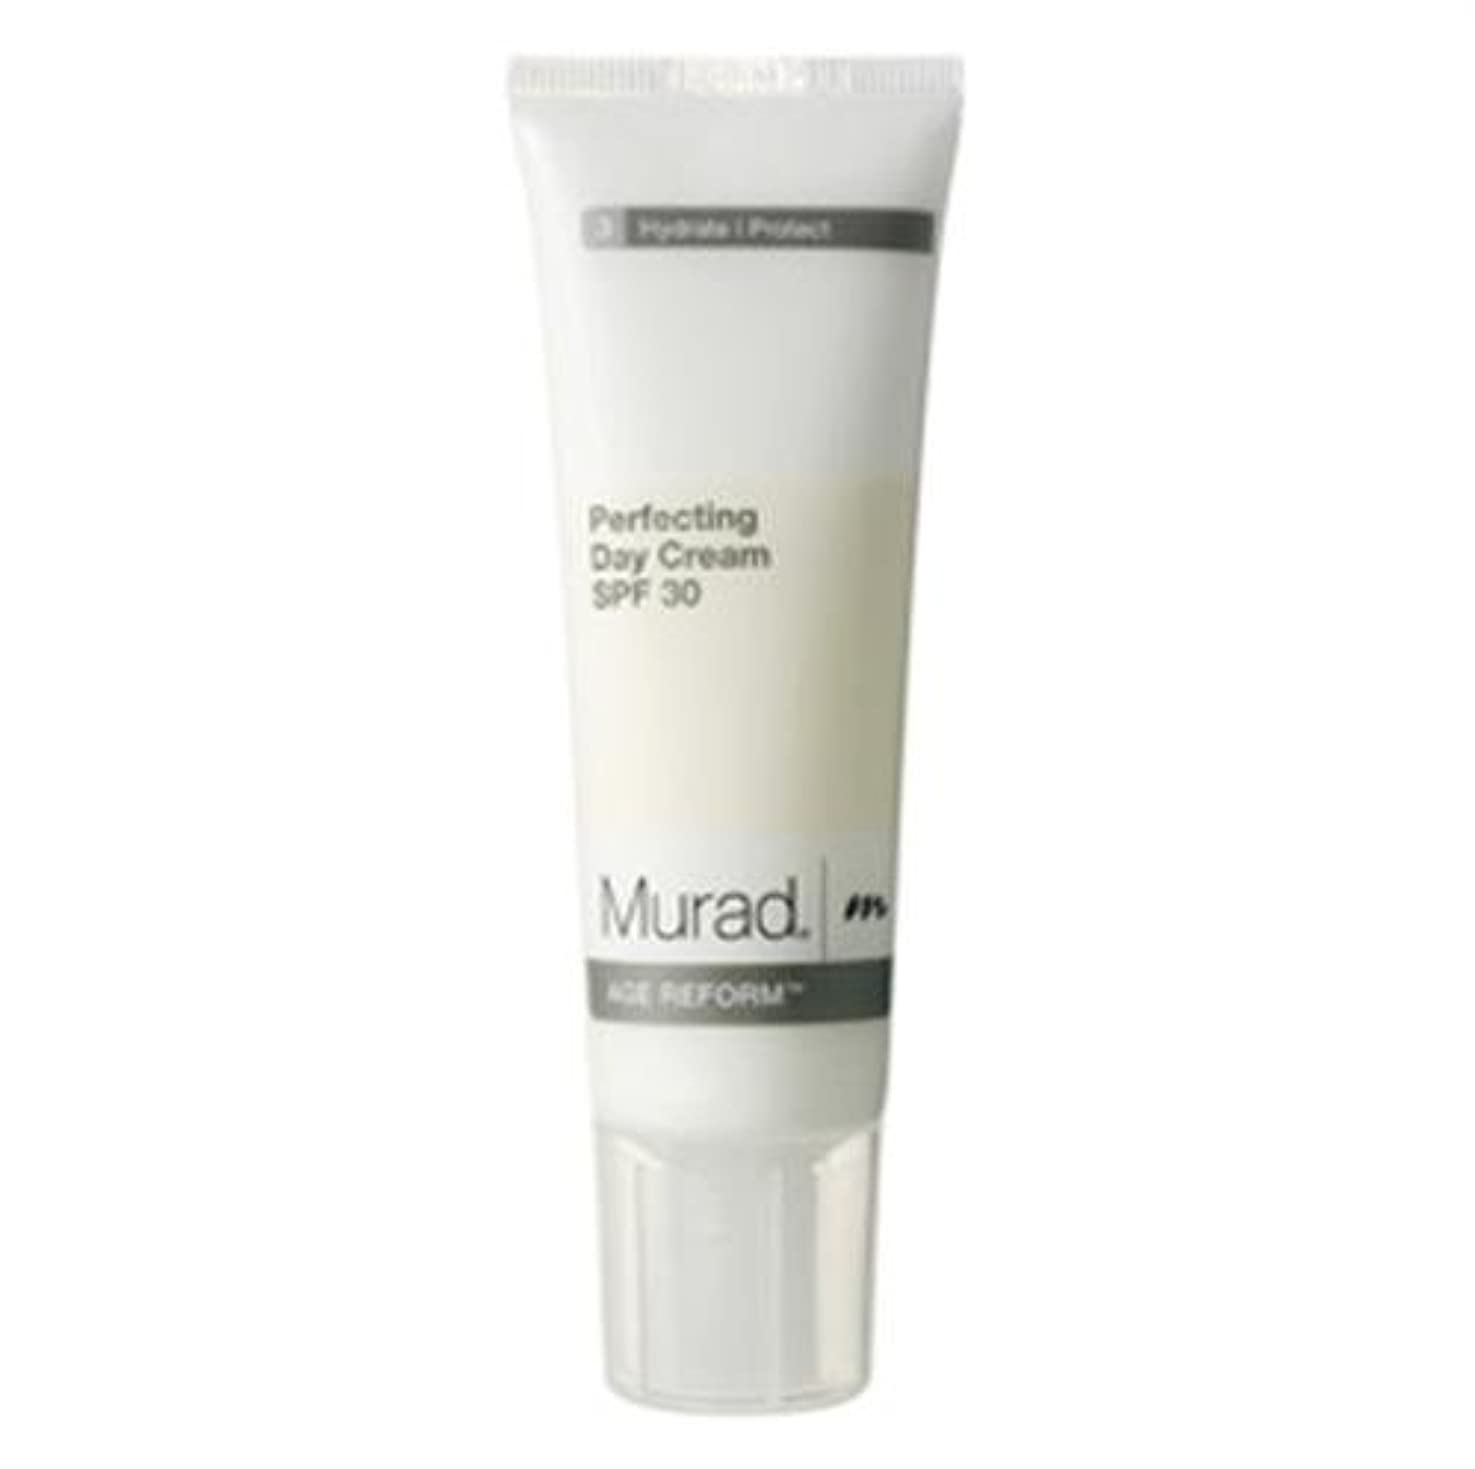 ミュラド Perfecting Day Cream SPF30 - Dry/Sensitive Skin (Exp. Date 03/2020) 50ml/1.7oz並行輸入品